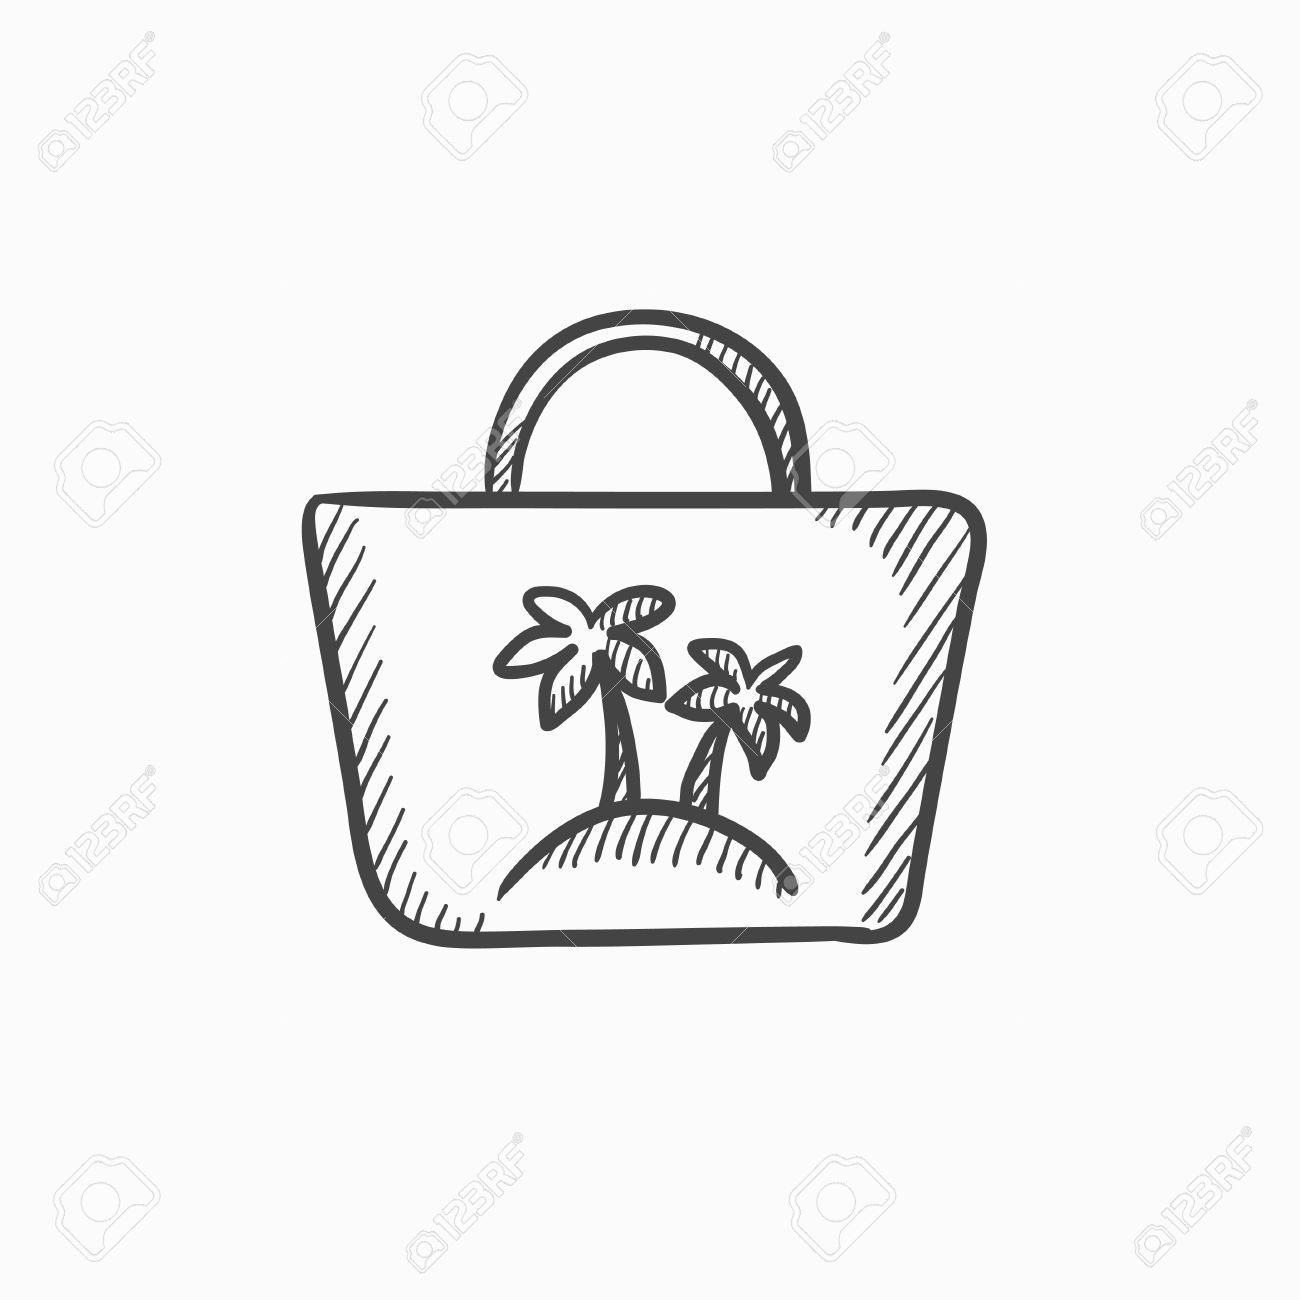 1300x1300 Beach Bag Vector Sketch Icon Isolated On Background. Hand Drawn